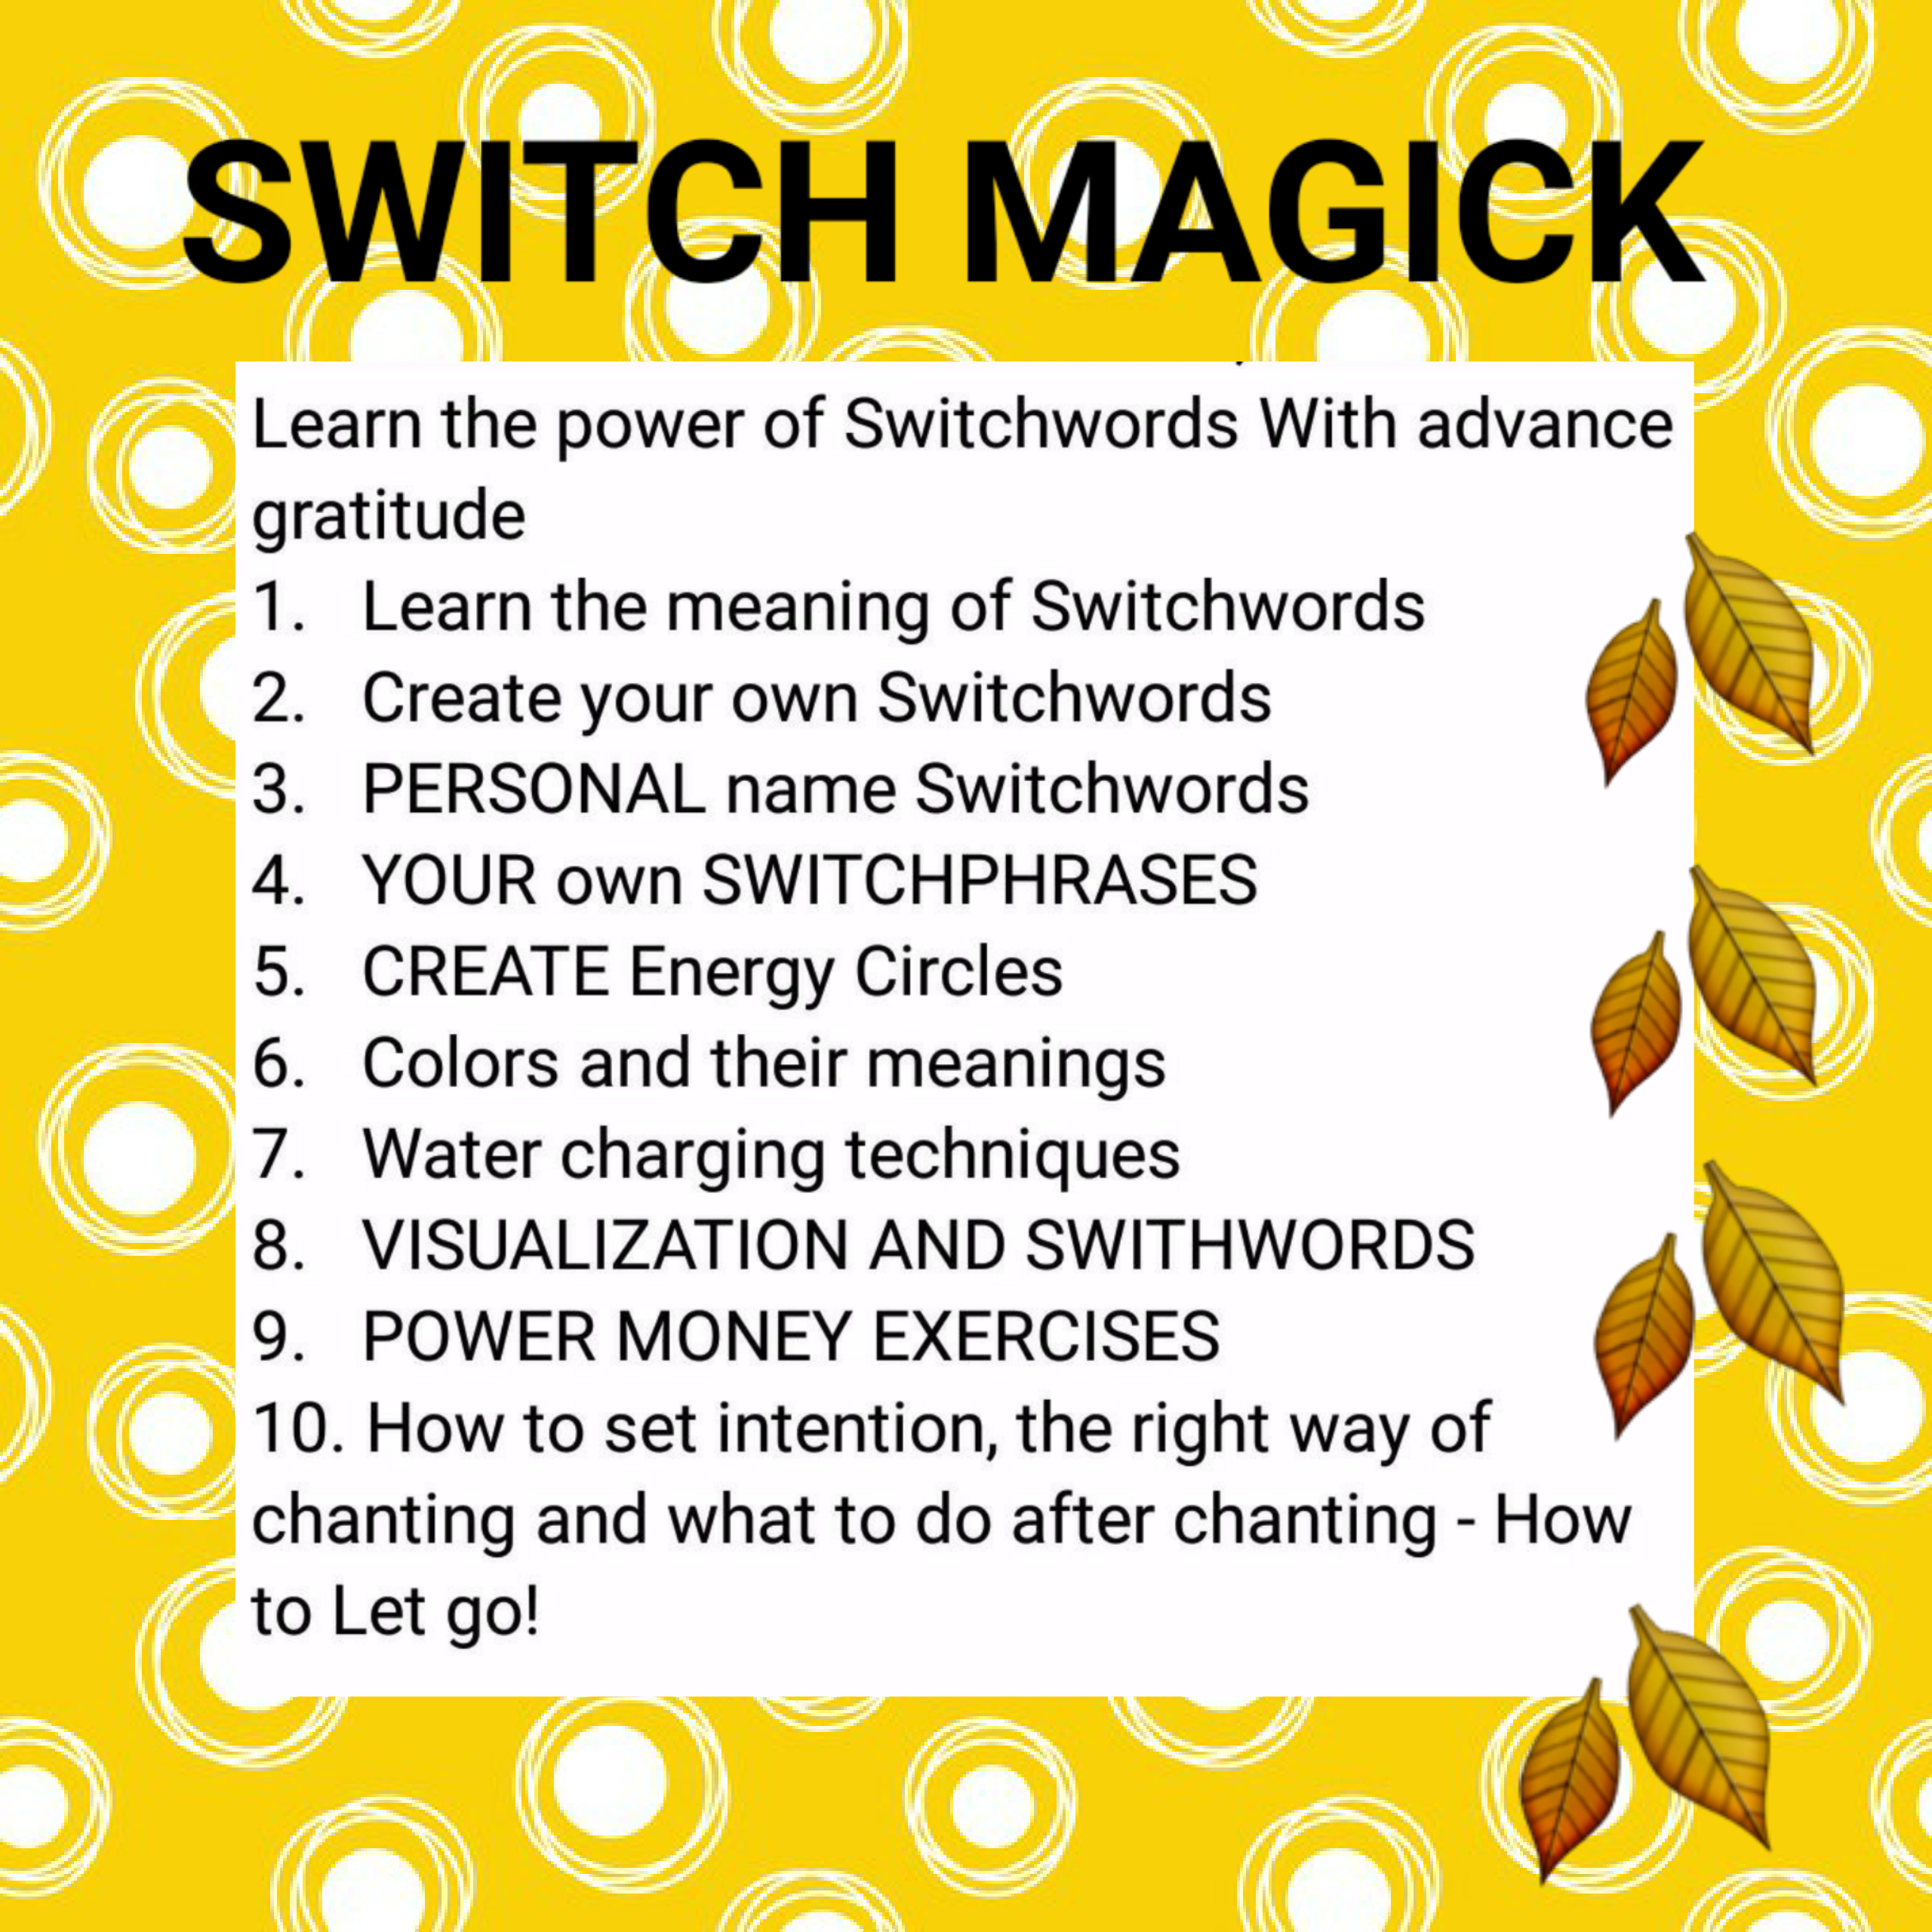 How to Use Switchwords and Energy Circles to Get Rid of Pests How to Use Switchwords and Energy Circles to Get Rid of Pests new photo